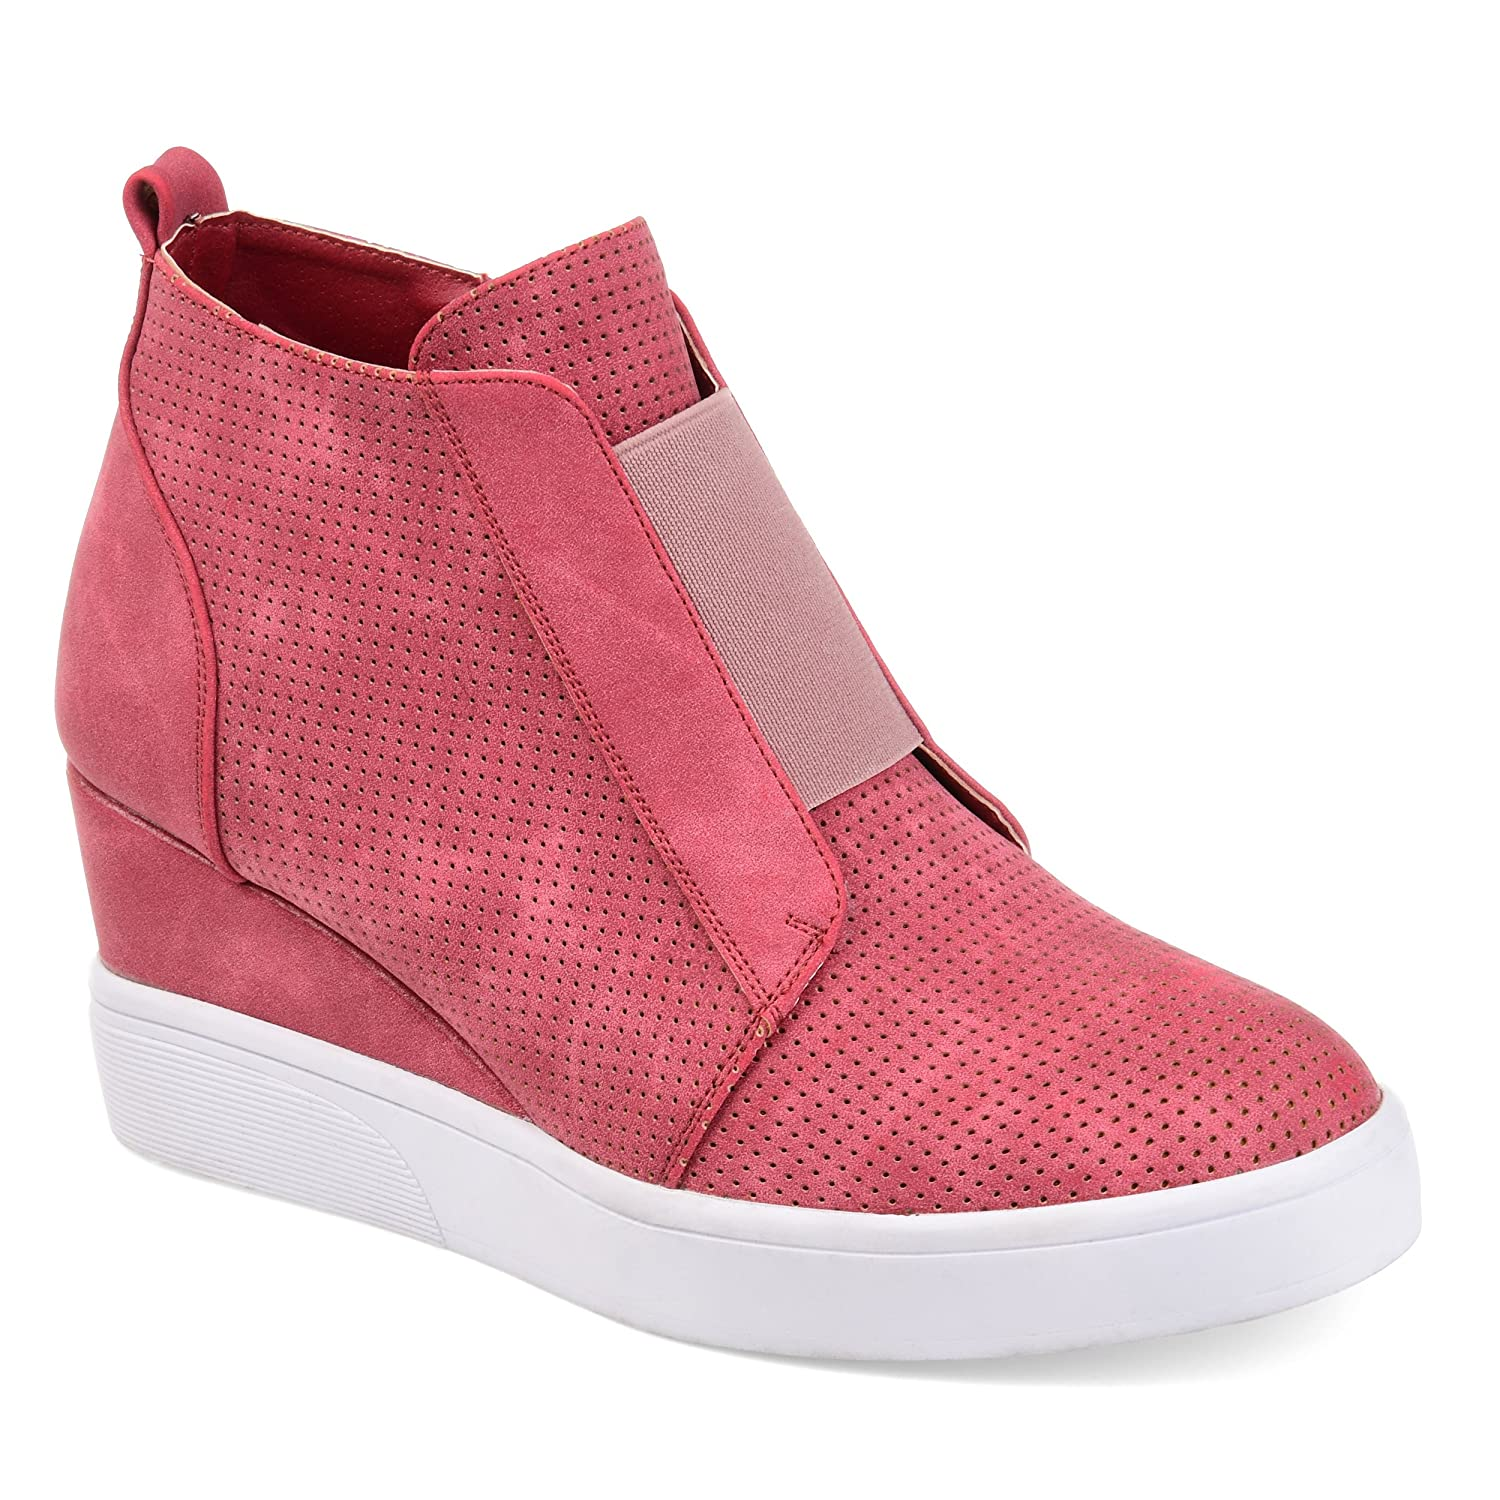 Journee Collection Womens 8 Athleisure Laser-Cut Side-Zip Sneaker Wedges B07BYT2NTB 8 Womens B(M) US|Pink 678bef